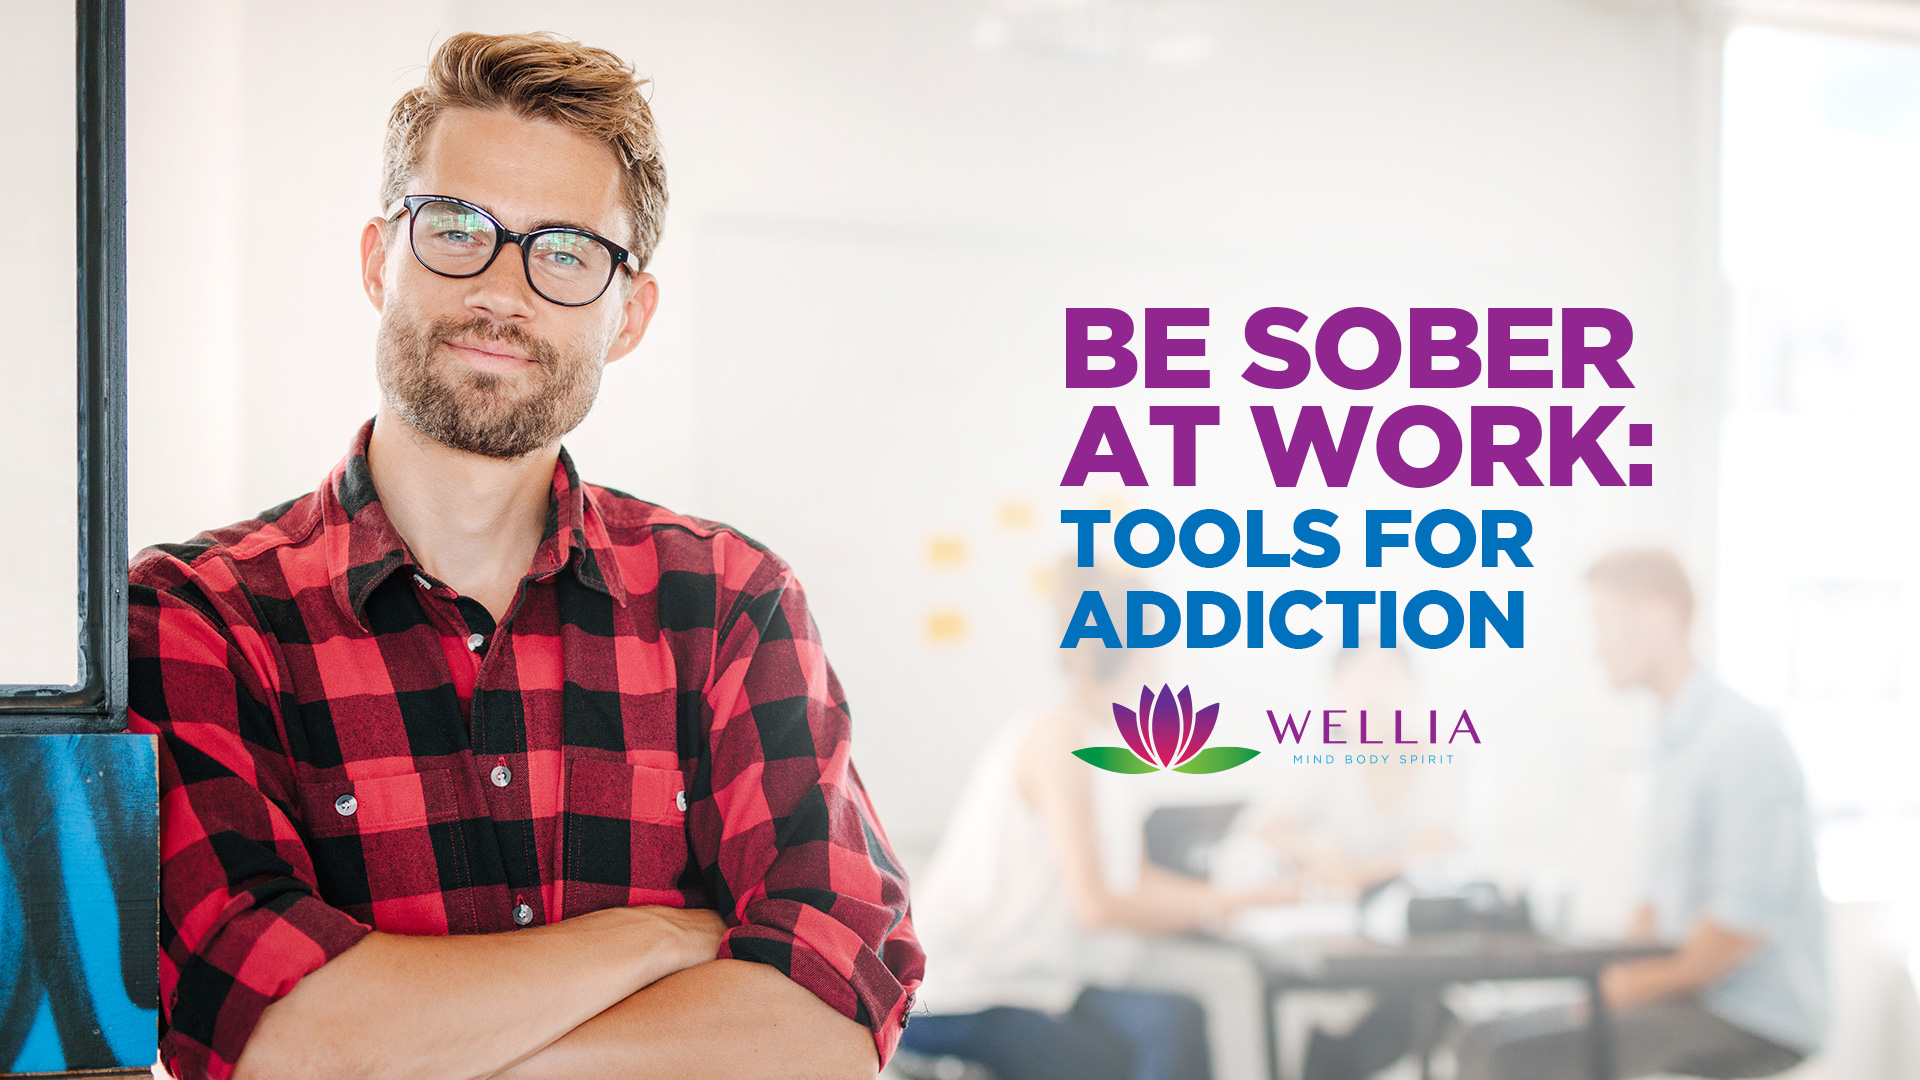 Be Sober at Work - Tools for Addiction